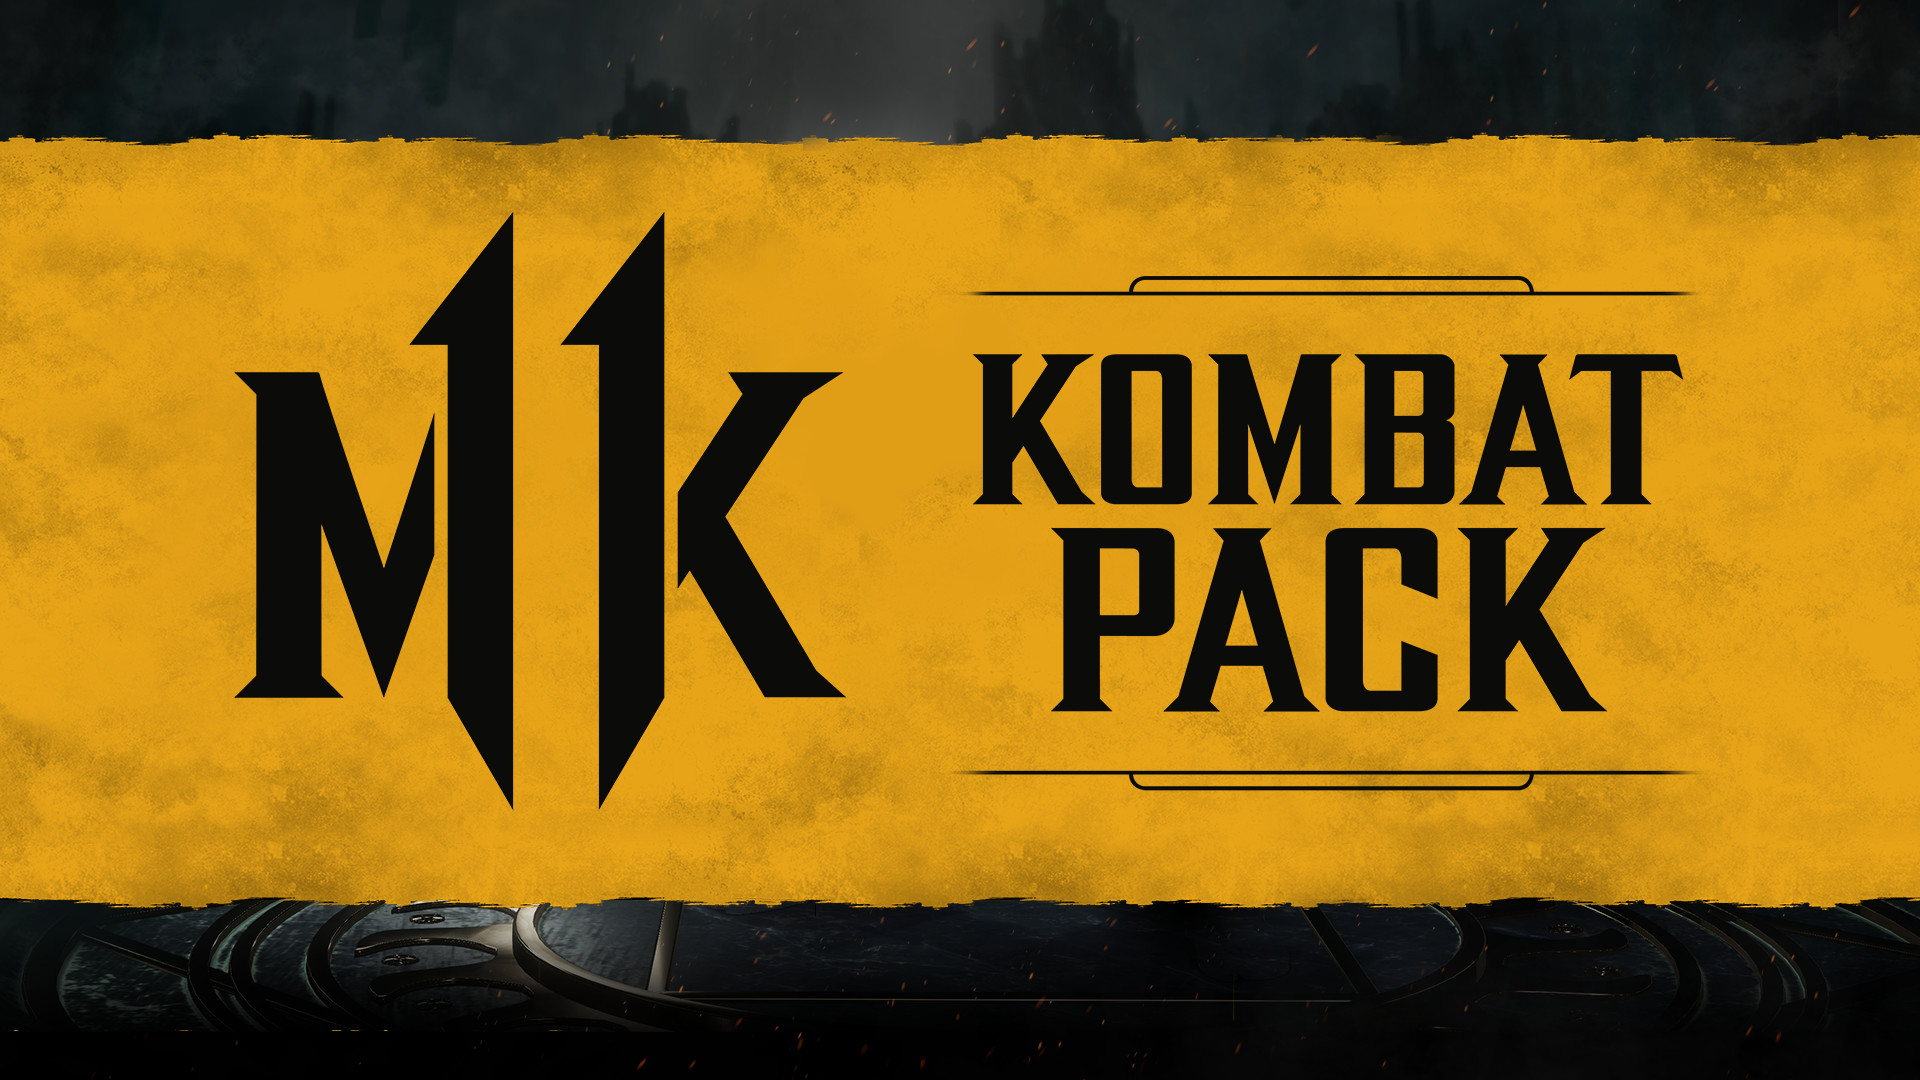 Mortal Kombat 11 Kombat Pack DLC (Steam Gift RU) 🔥